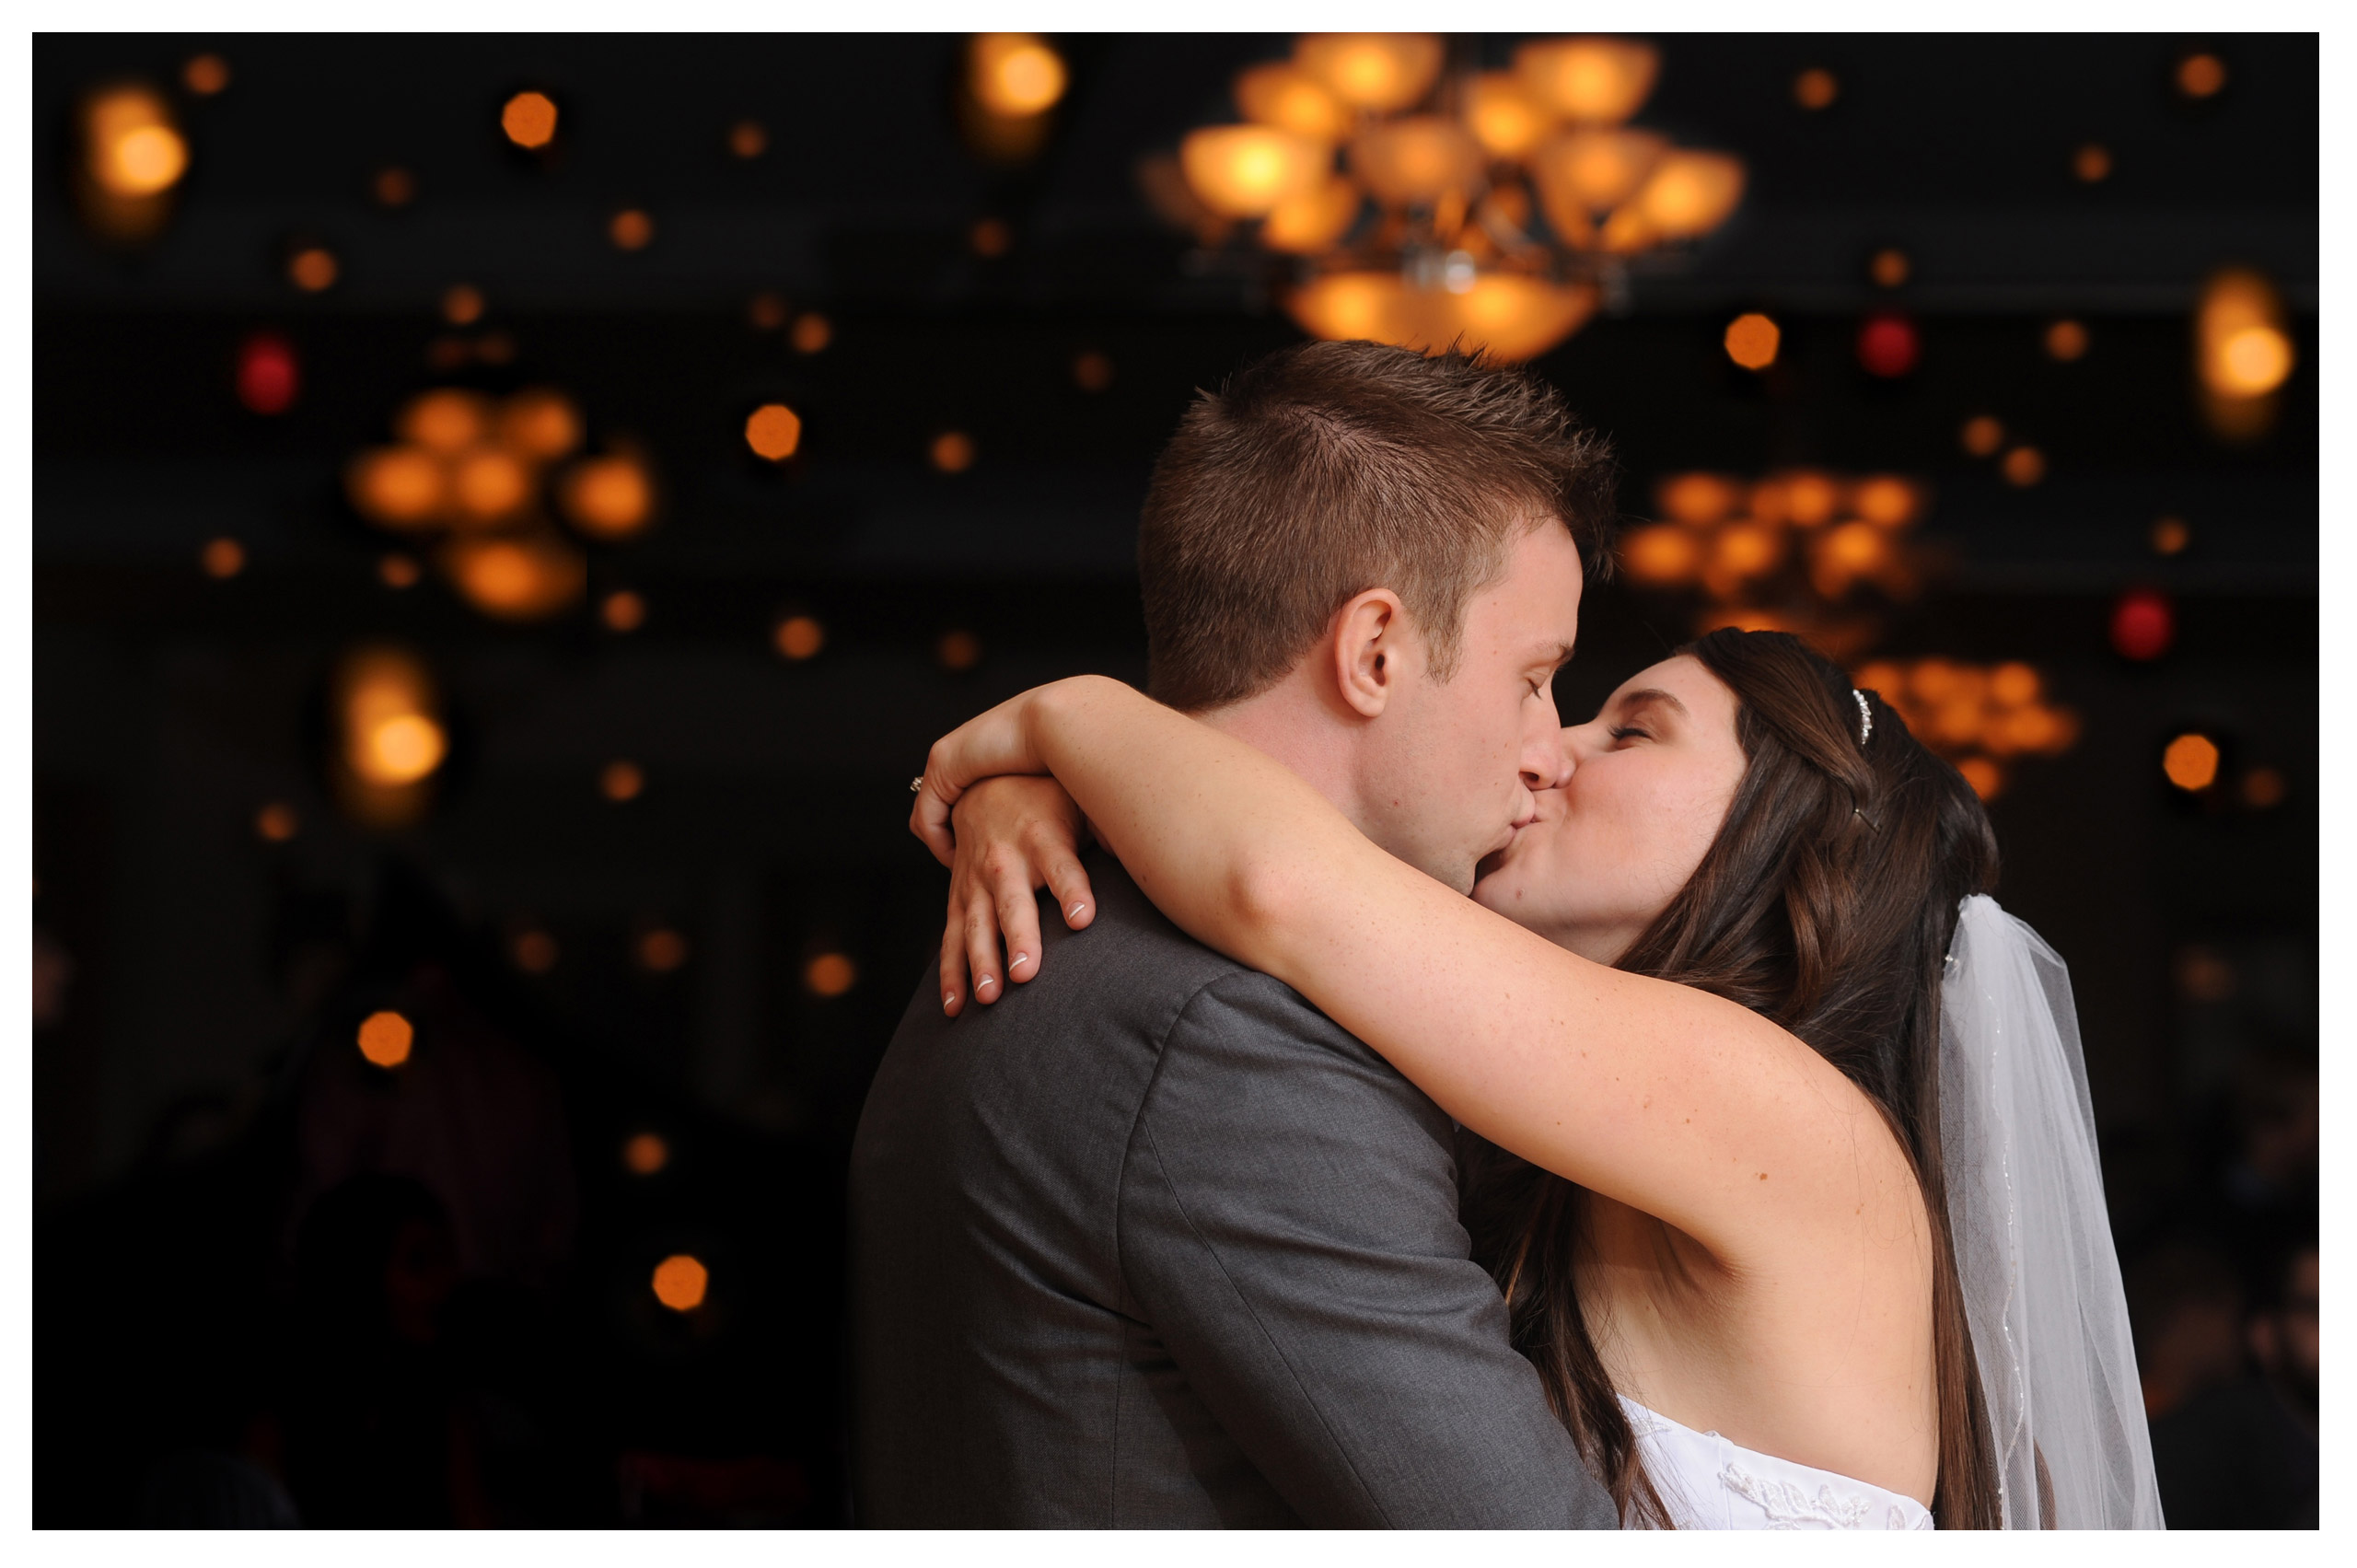 michigan wedding photographer takes photos full of emotion.